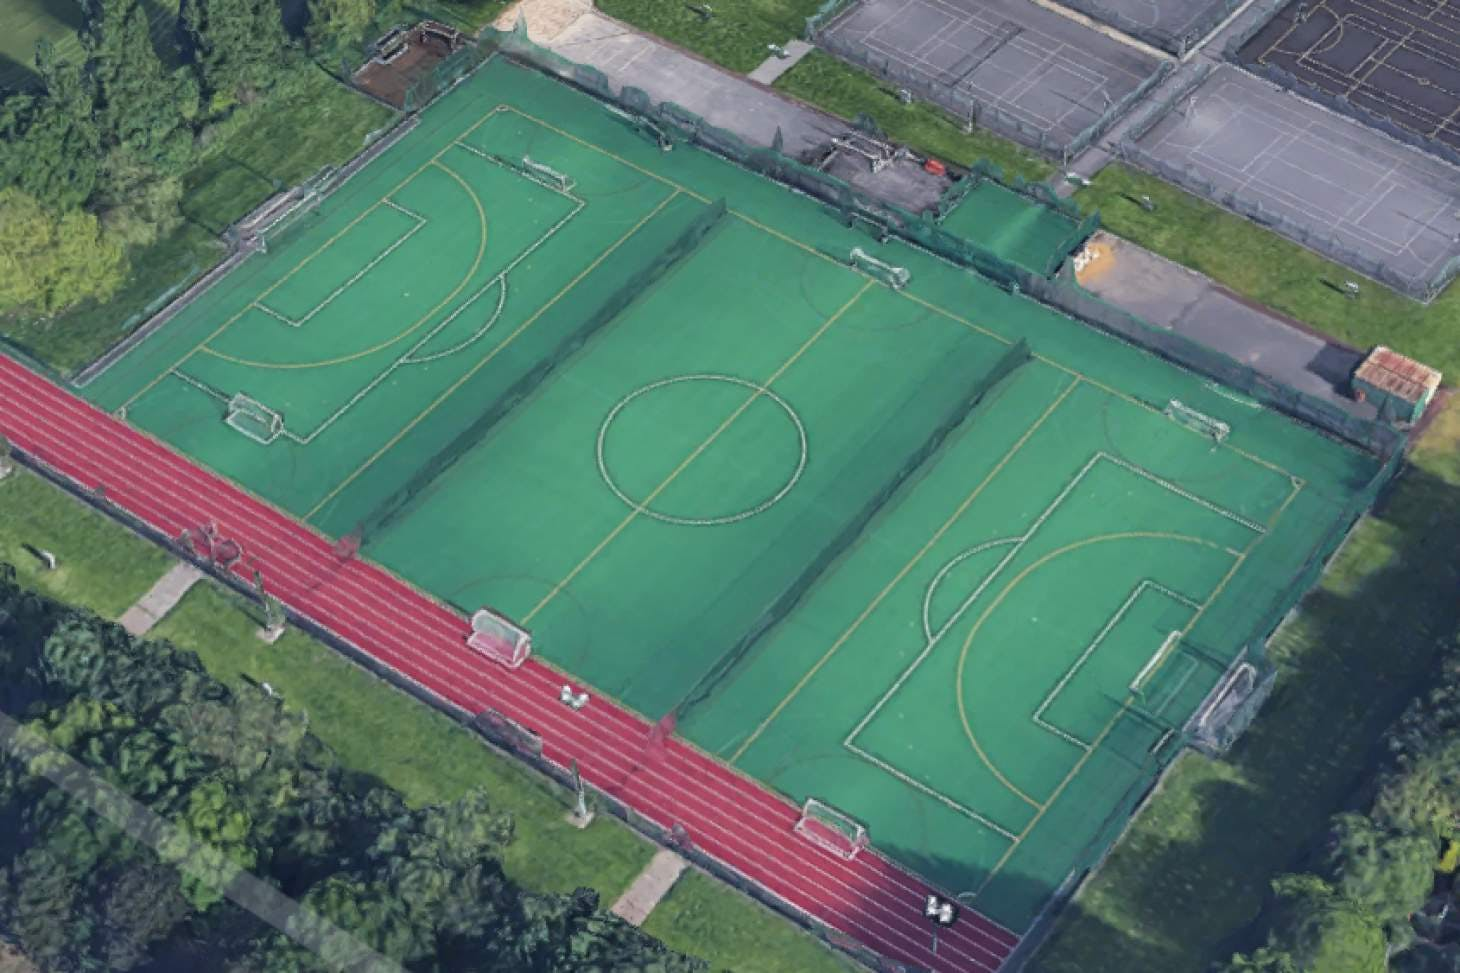 Dorcan Recreation Complex 11 a side | Astroturf football pitch